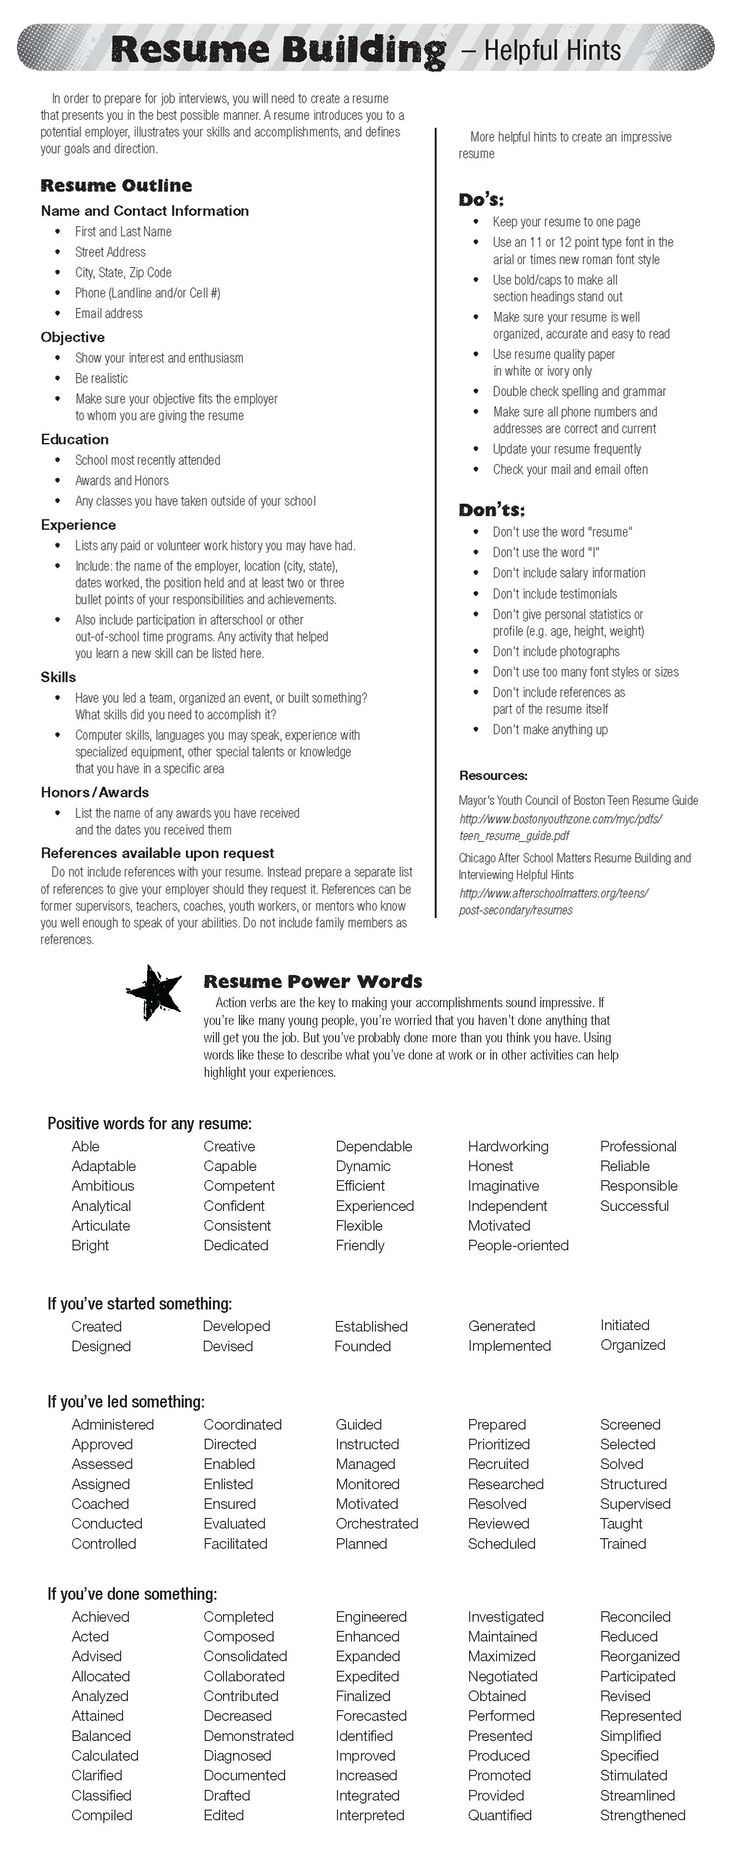 Opposenewapstandardsus  Inspiring  Ideas About Resume On Pinterest  Cv Format Resume Cv And  With Inspiring  Ideas About Resume On Pinterest  Cv Format Resume Cv And Resume Templates With Astounding Summary On Resume Examples Also Resume Customer Service Objective In Addition Hospital Pharmacist Resume And Microsoft Office Word Resume Templates As Well As Resume Templates Google Drive Additionally Sample Resume For Business Analyst From Pinterestcom With Opposenewapstandardsus  Inspiring  Ideas About Resume On Pinterest  Cv Format Resume Cv And  With Astounding  Ideas About Resume On Pinterest  Cv Format Resume Cv And Resume Templates And Inspiring Summary On Resume Examples Also Resume Customer Service Objective In Addition Hospital Pharmacist Resume From Pinterestcom